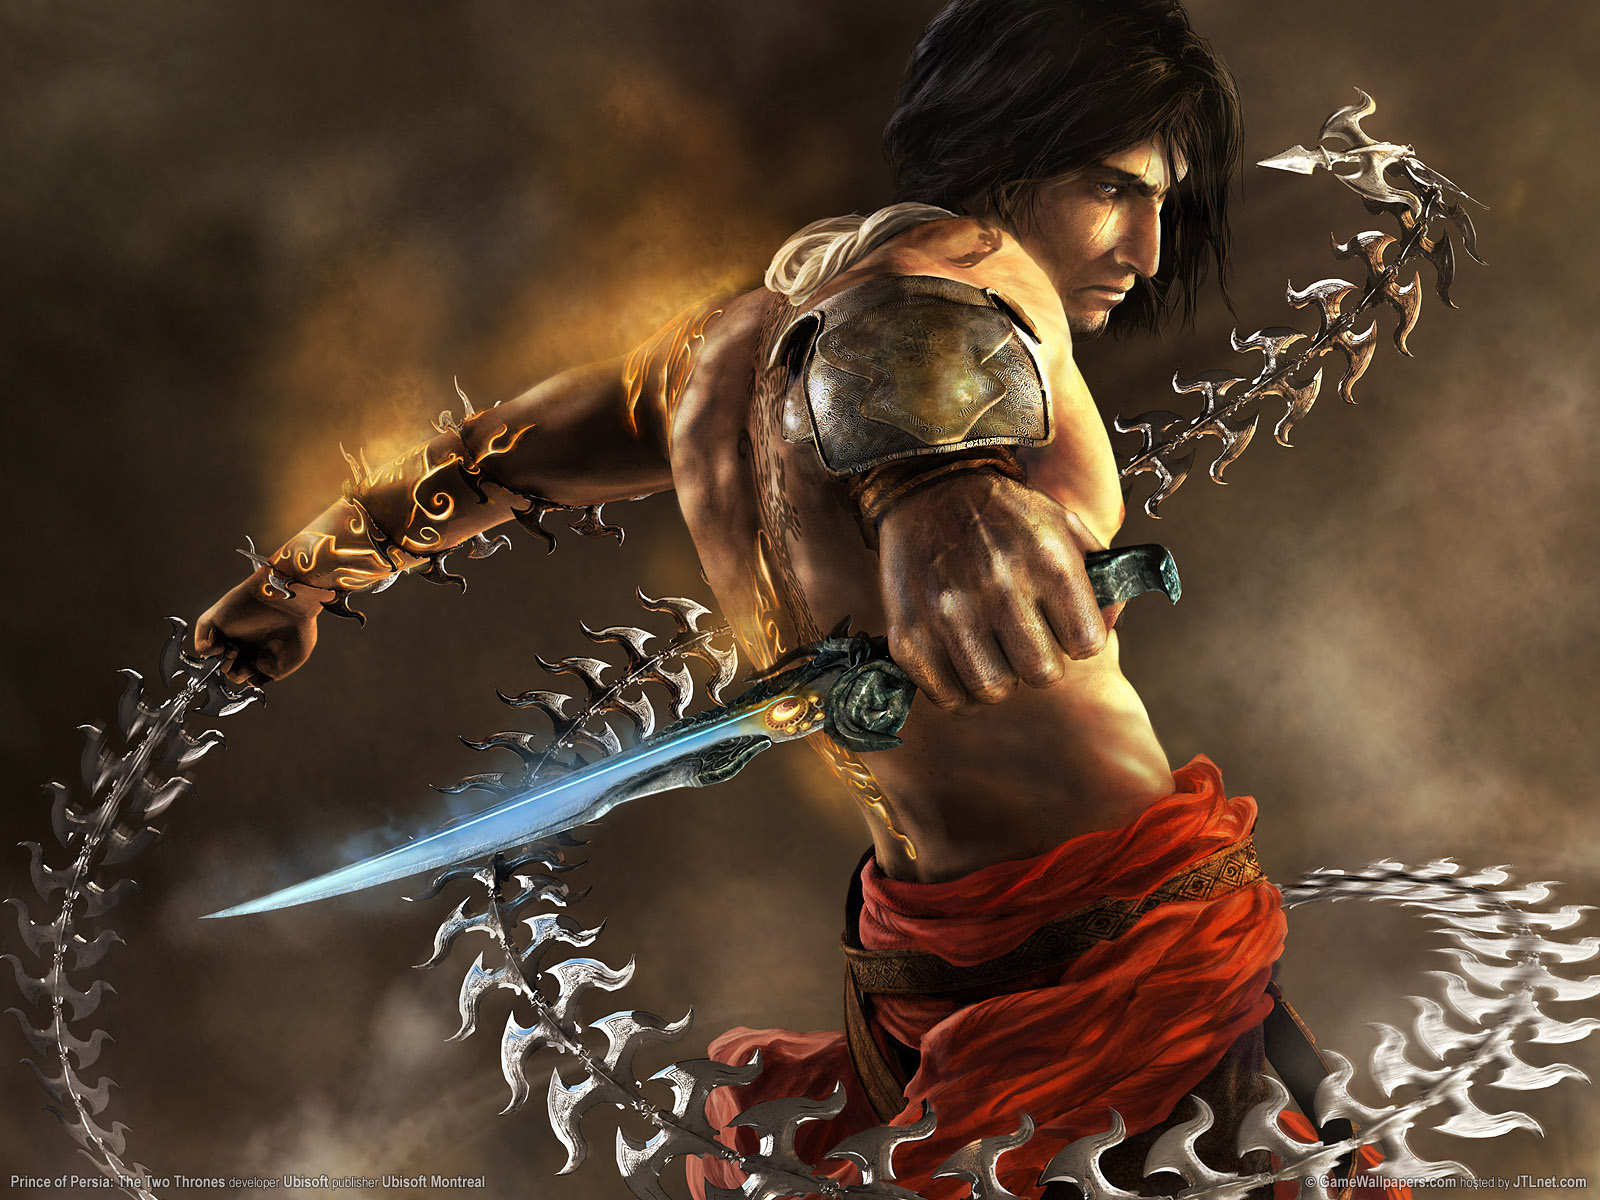 9.jpg - Prince of Persia: The Two Thrones